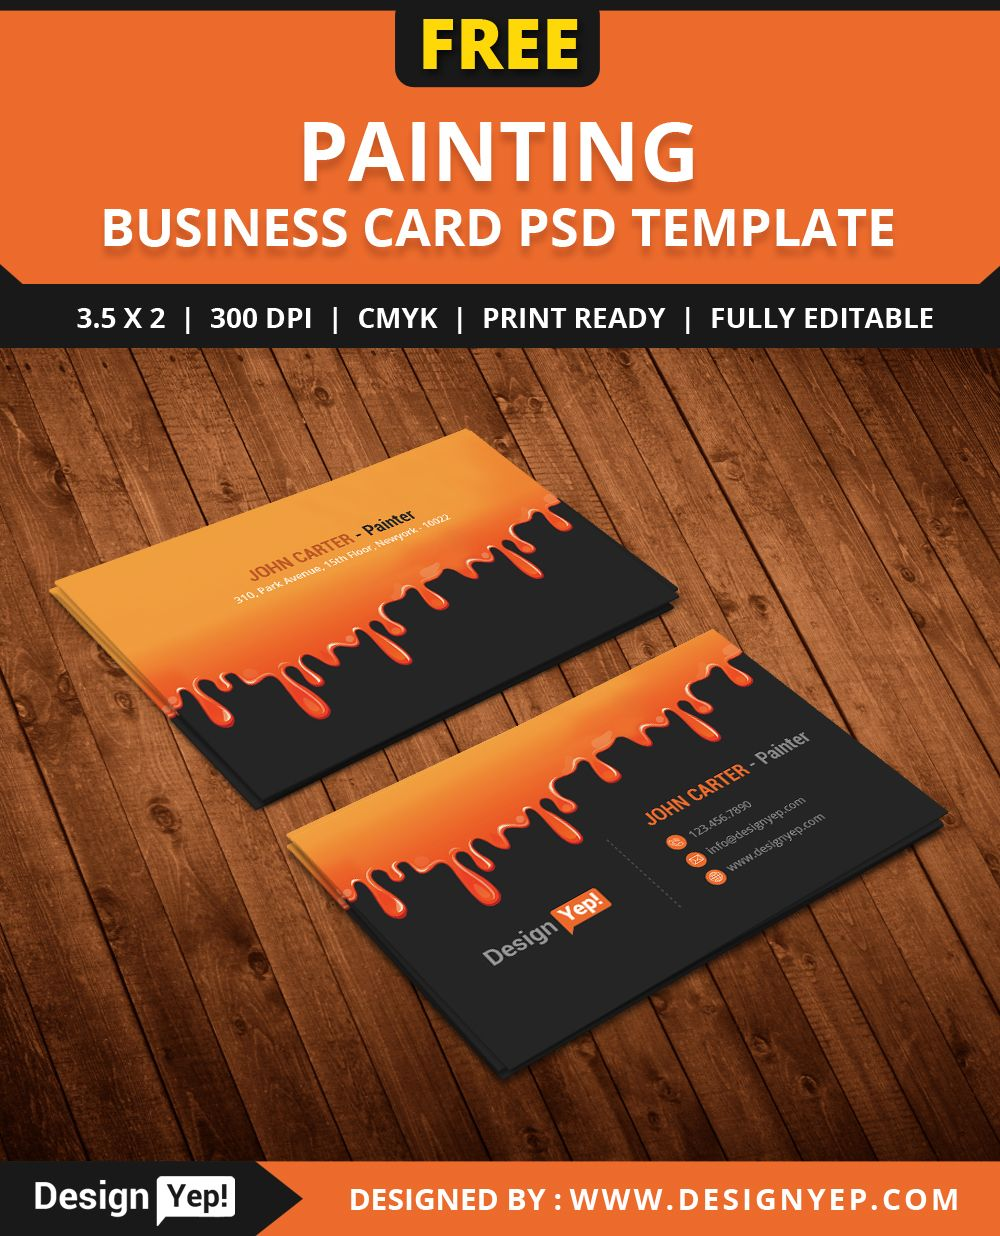 Free painting business card psd template free business card free painting business card psd template cheaphphosting Image collections